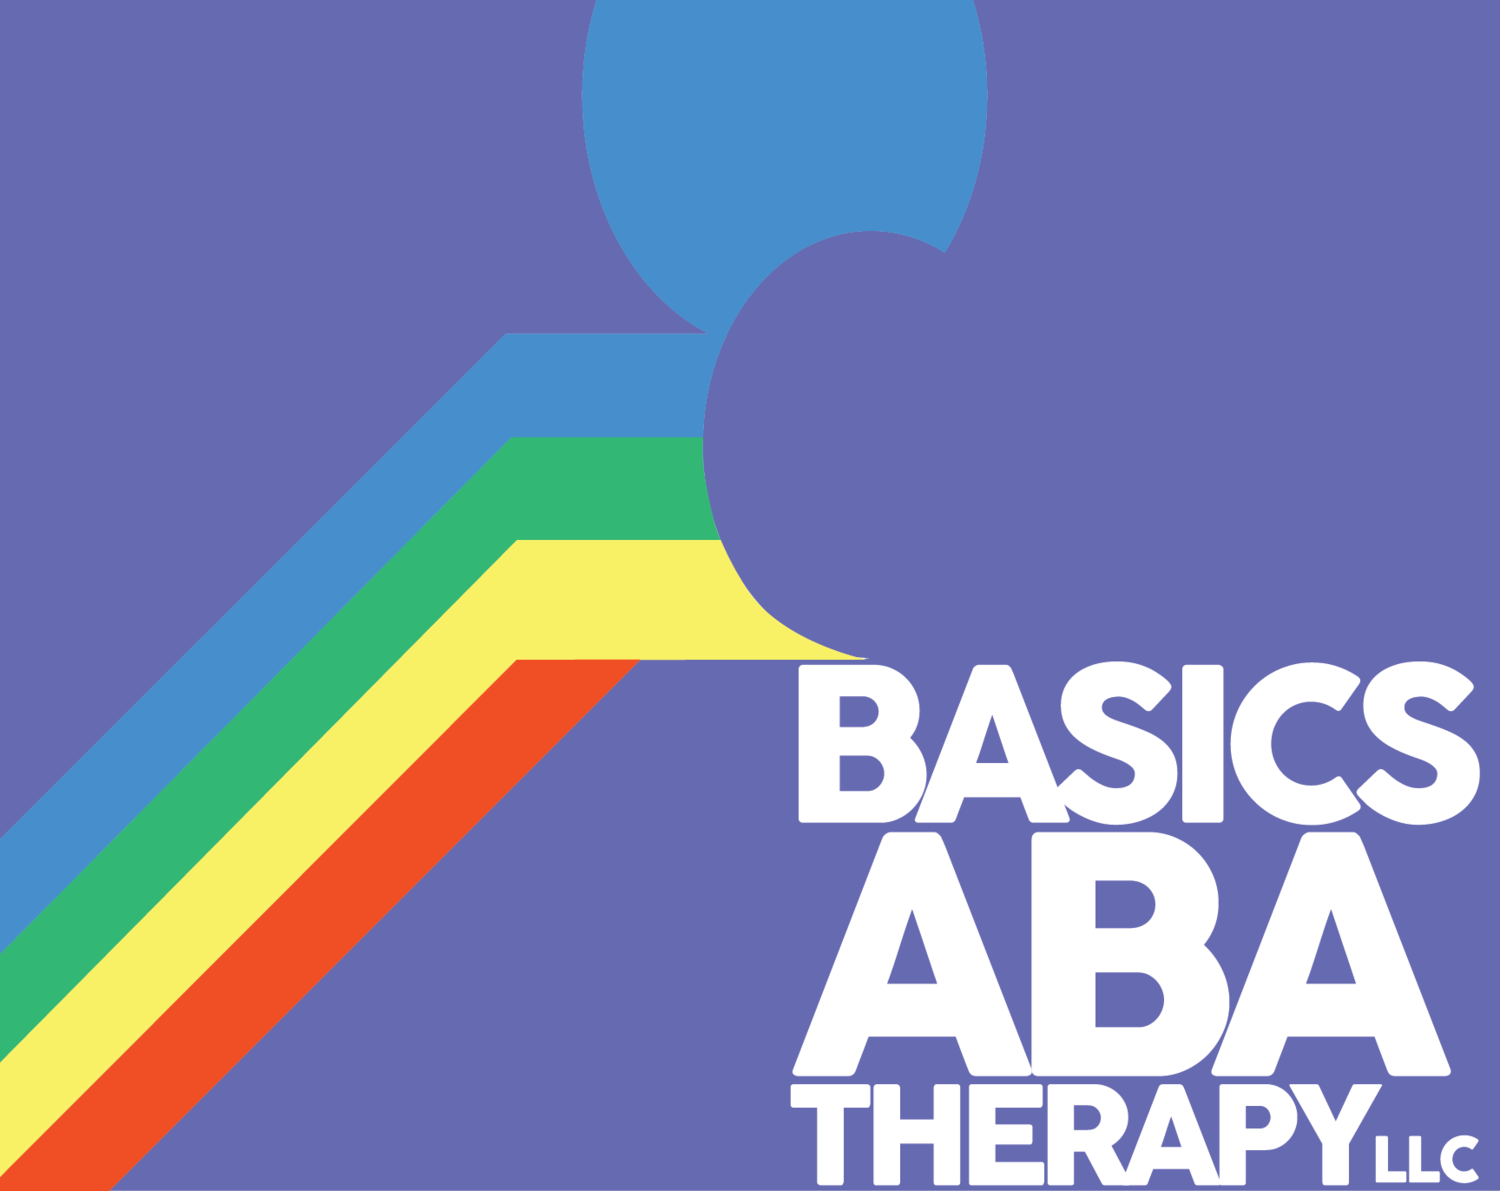 B.A.S.I.C.S. ABA Therapy